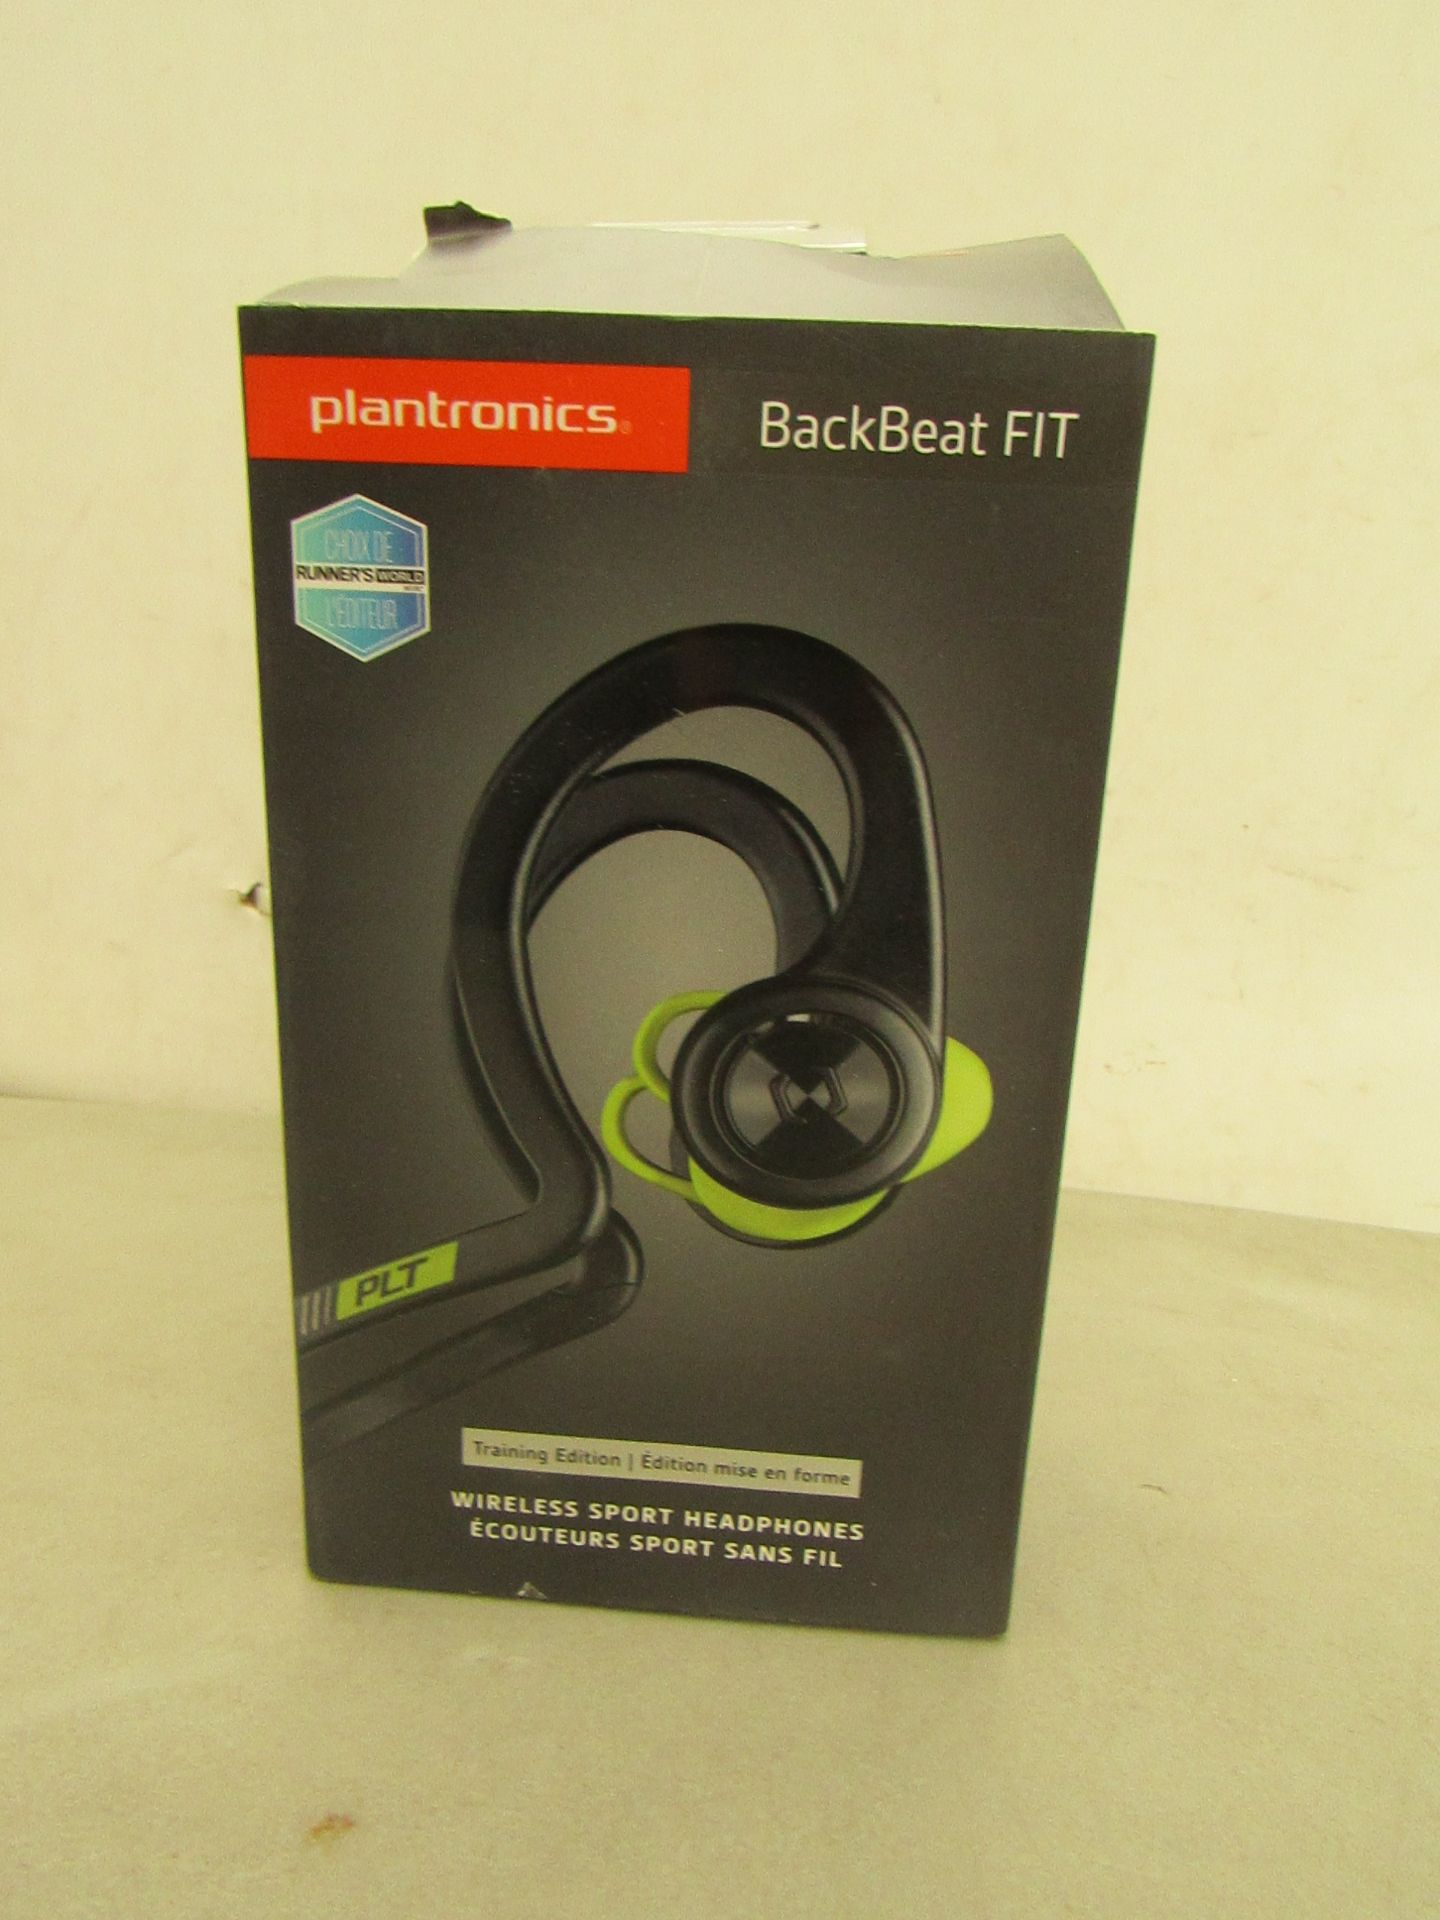 Lotto 31 - Plantronics Backbeat Fit Headphones RRP £84.89, Unchecked and Boxed